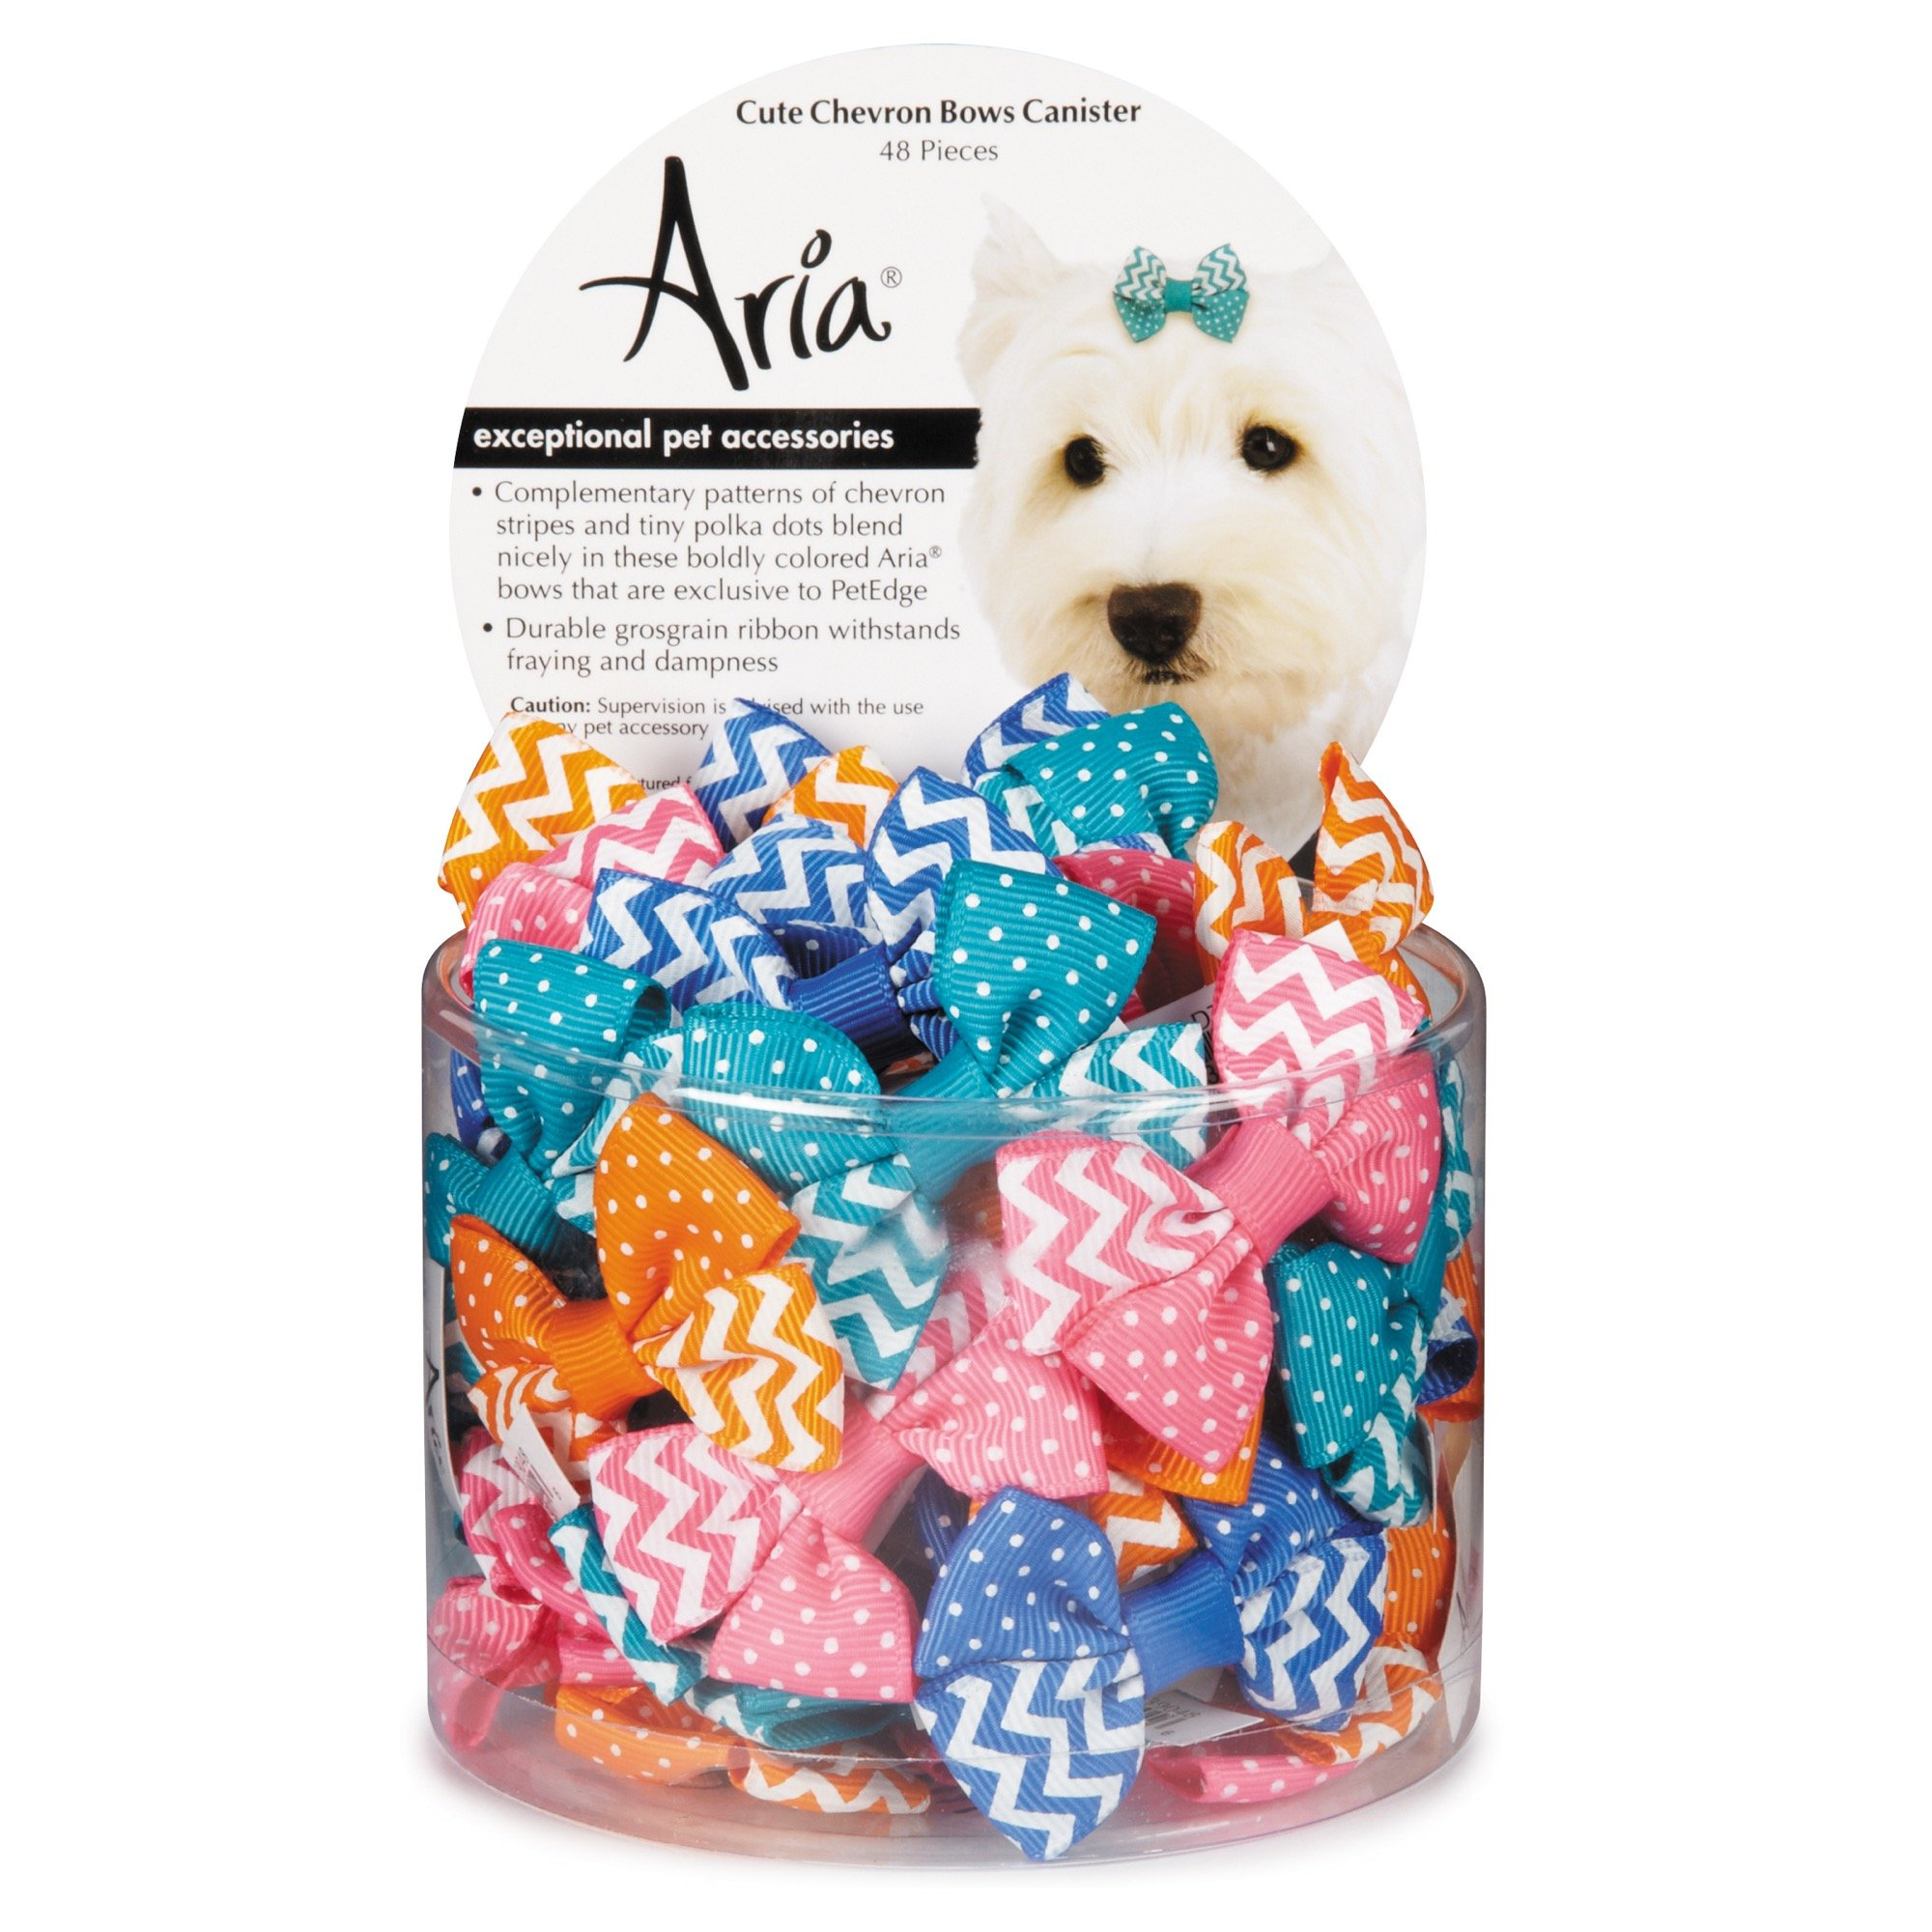 Aria 48 Piece Cute Chevron Dog Bow Canister by Aria